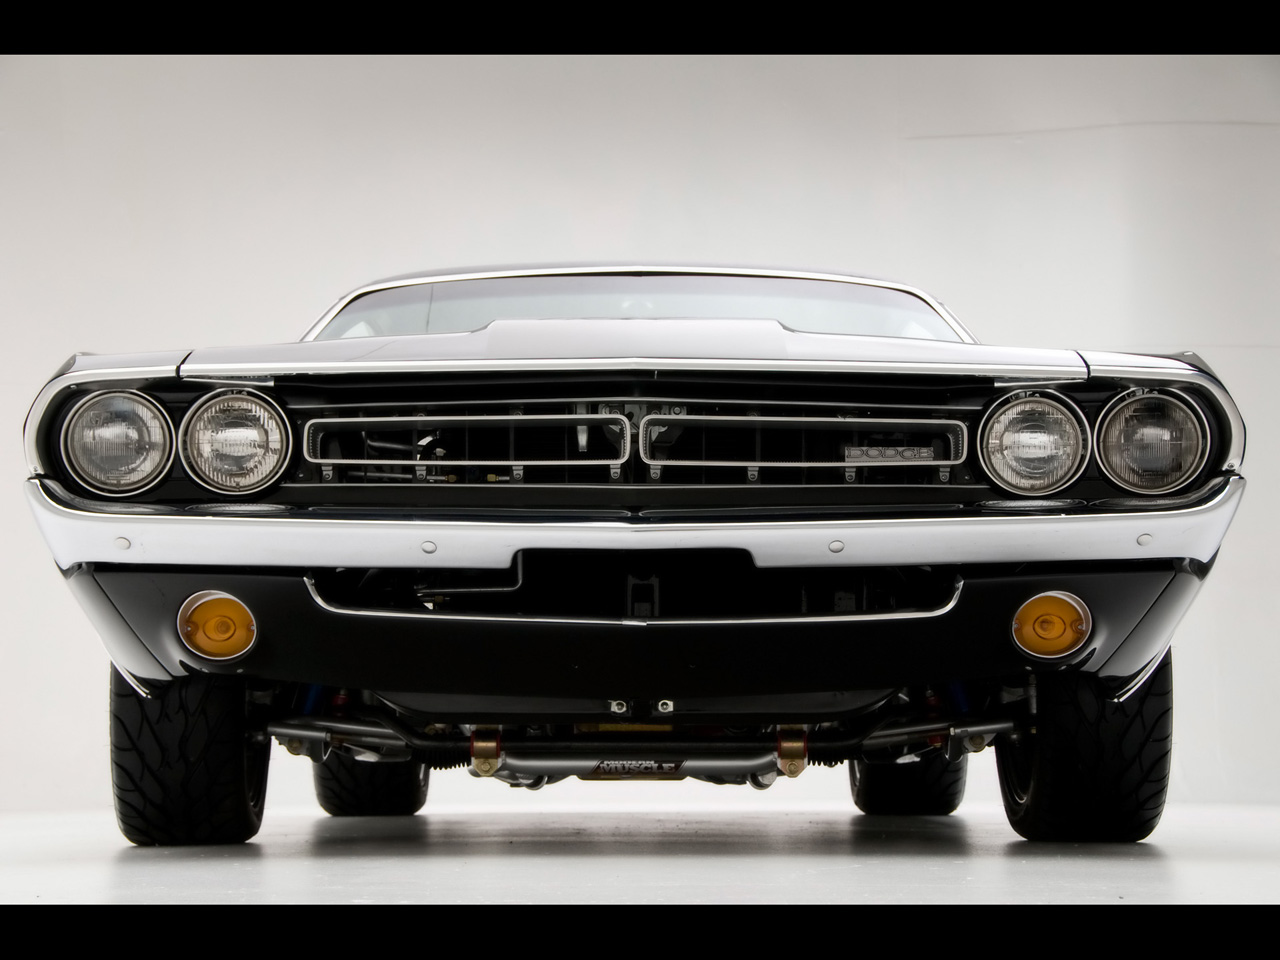 The Hottest Muscle Cars In The World: The Muscle Car-Motor